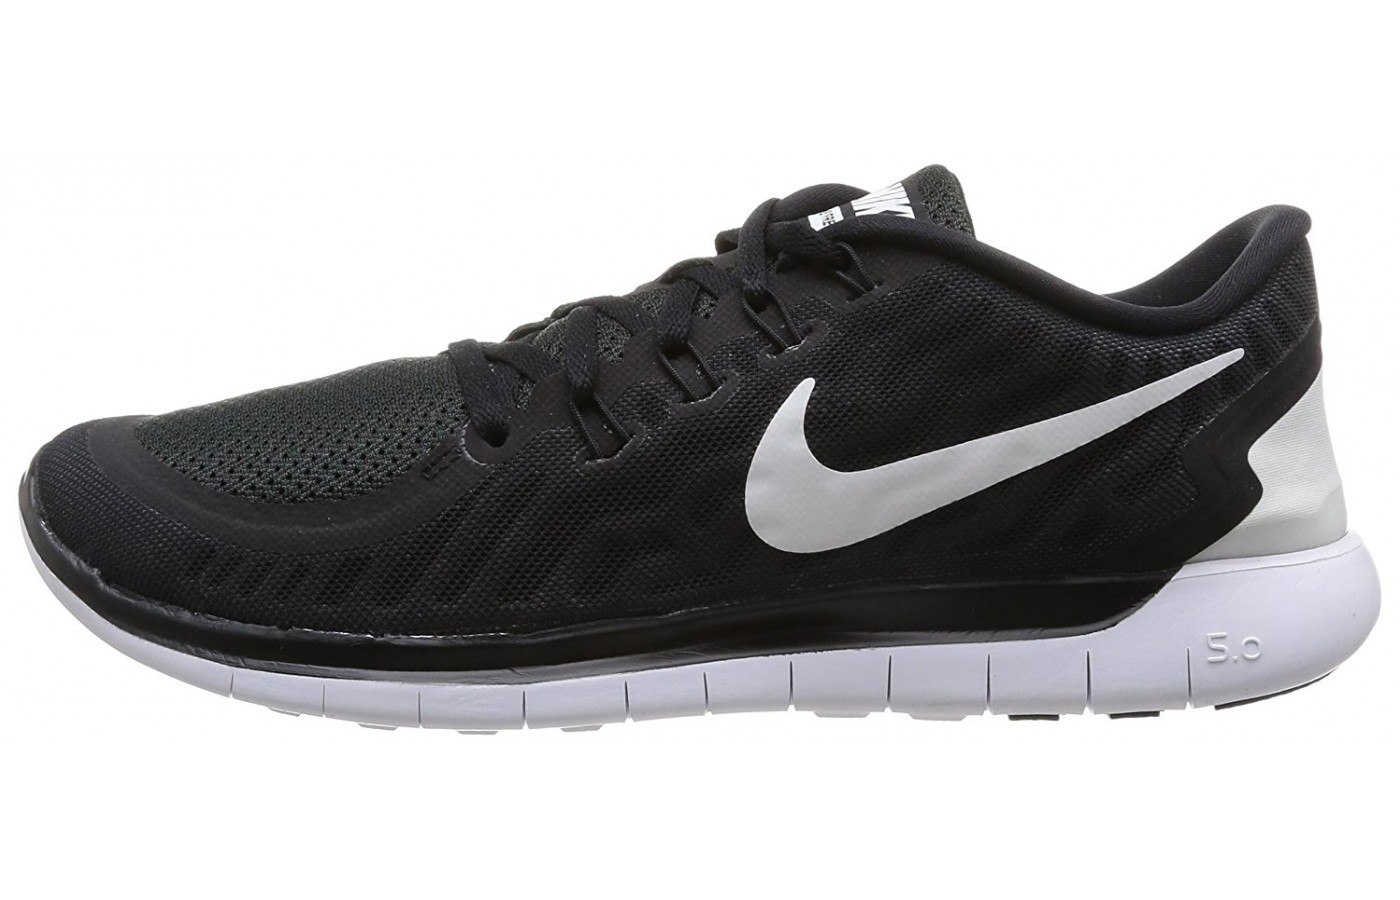 a94457ee3965 Nike Free 5.0 Reviewed   Tested for Performance in 2019